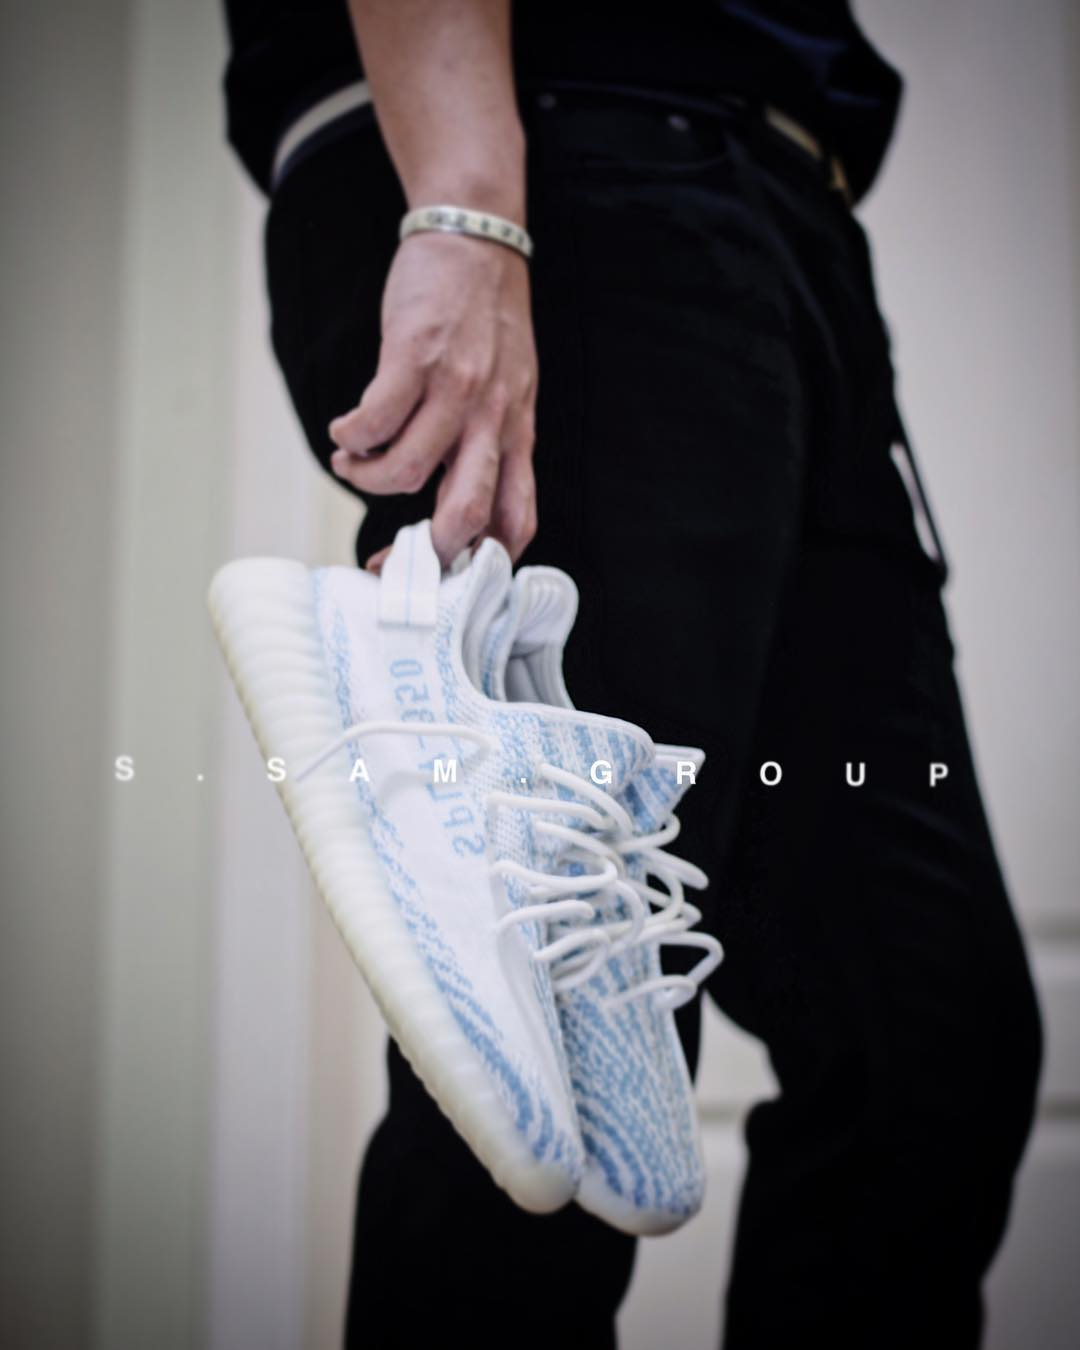 yeezy-boost-350-v2-white-teal-blue-release-coming-soon